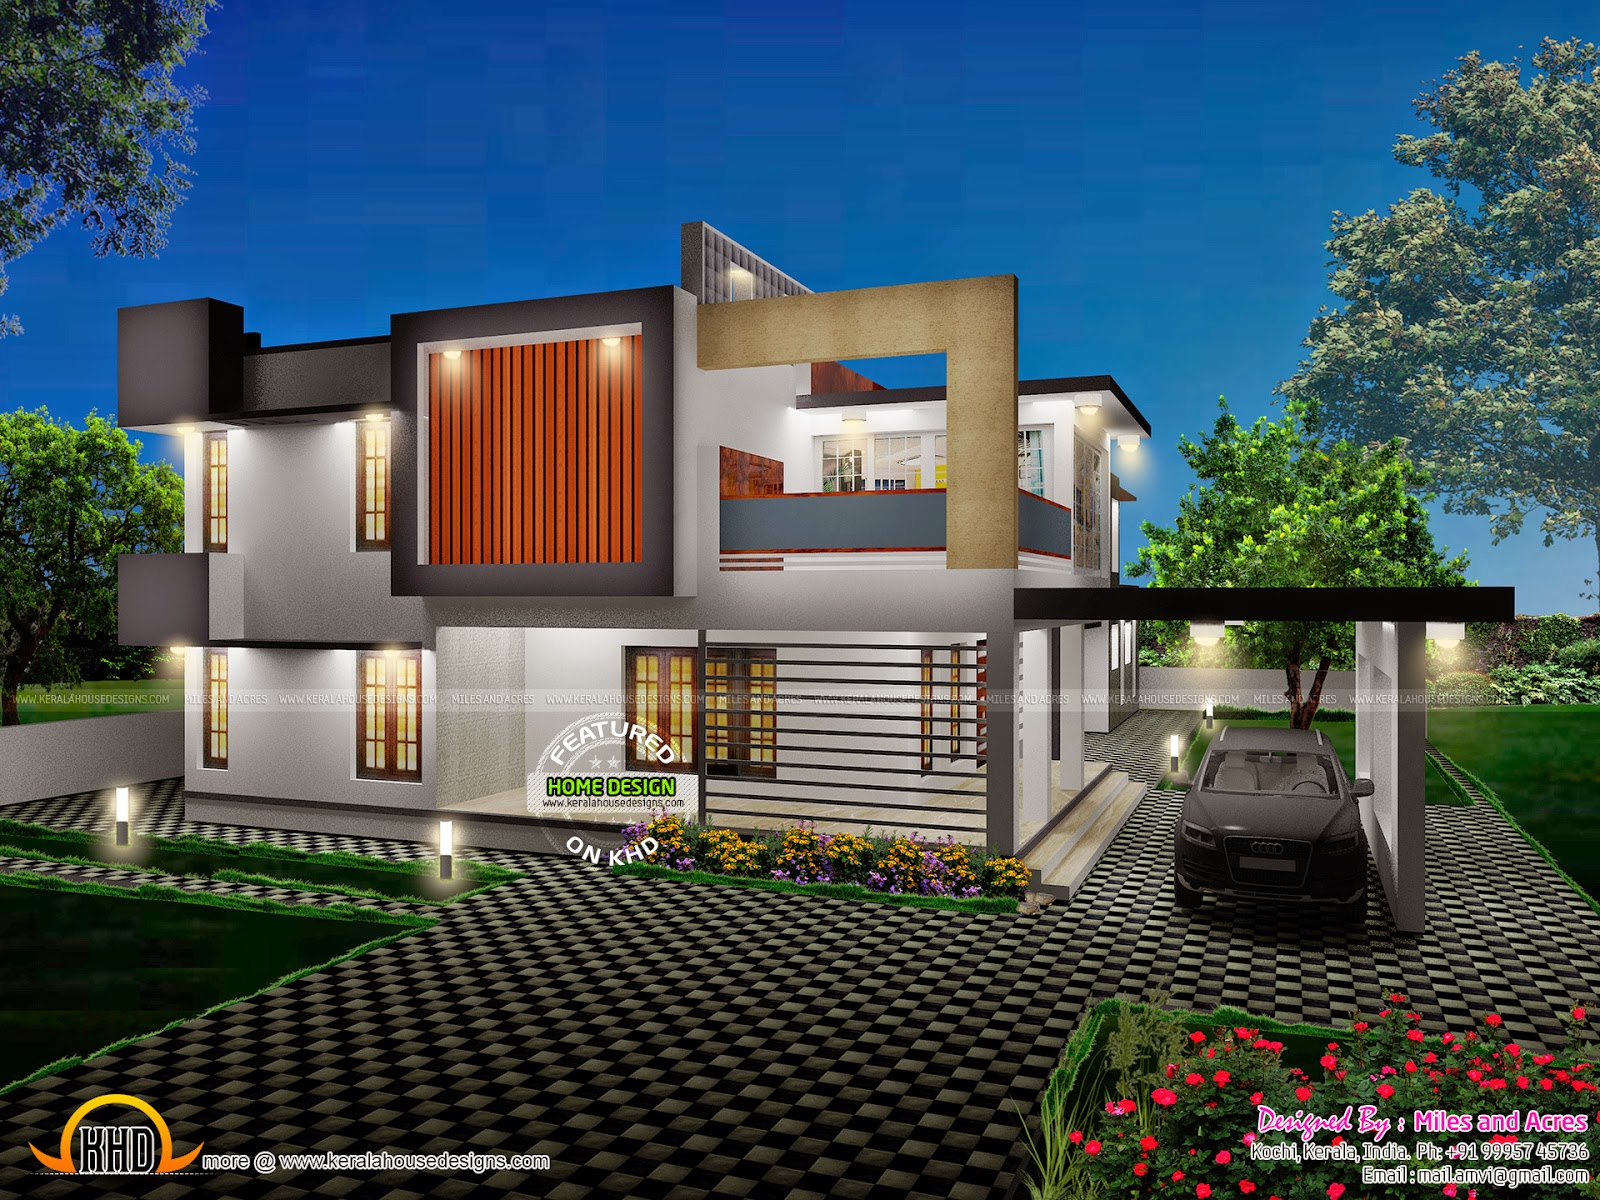 3d view with plan kerala home design and floor plans board and batten with cedar shake siding lake house floor